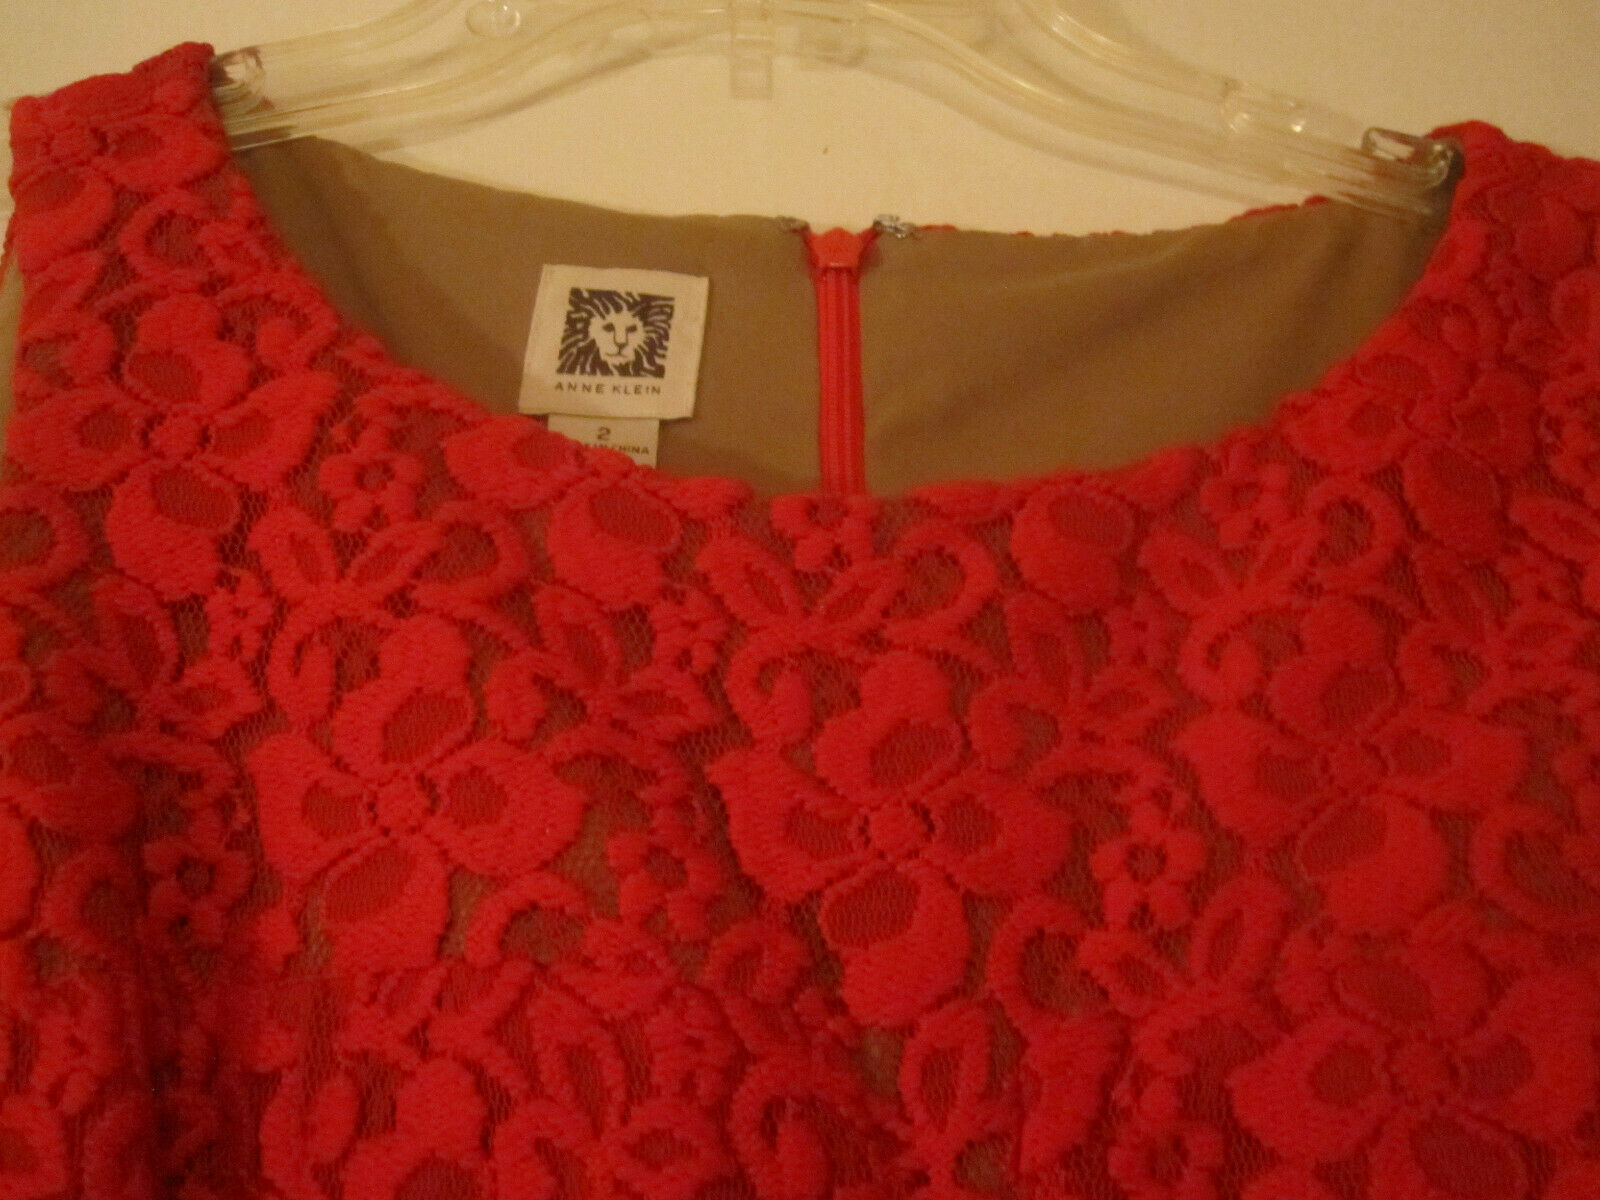 Anne Klein Womens Red Crochet Dress Lined Sleeveless Size 2 image 4